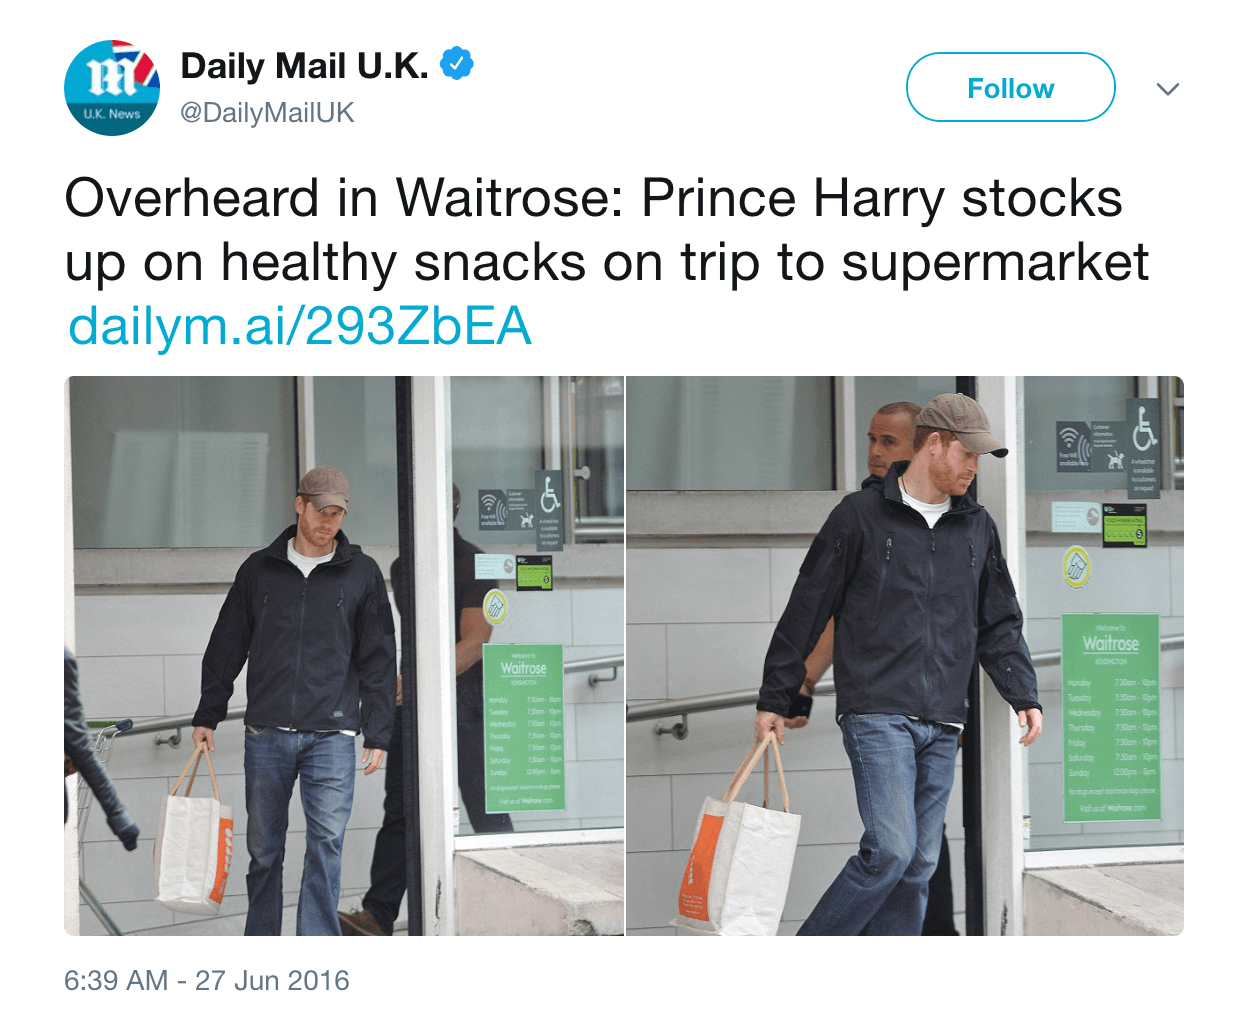 Prince Harry grocery shopping